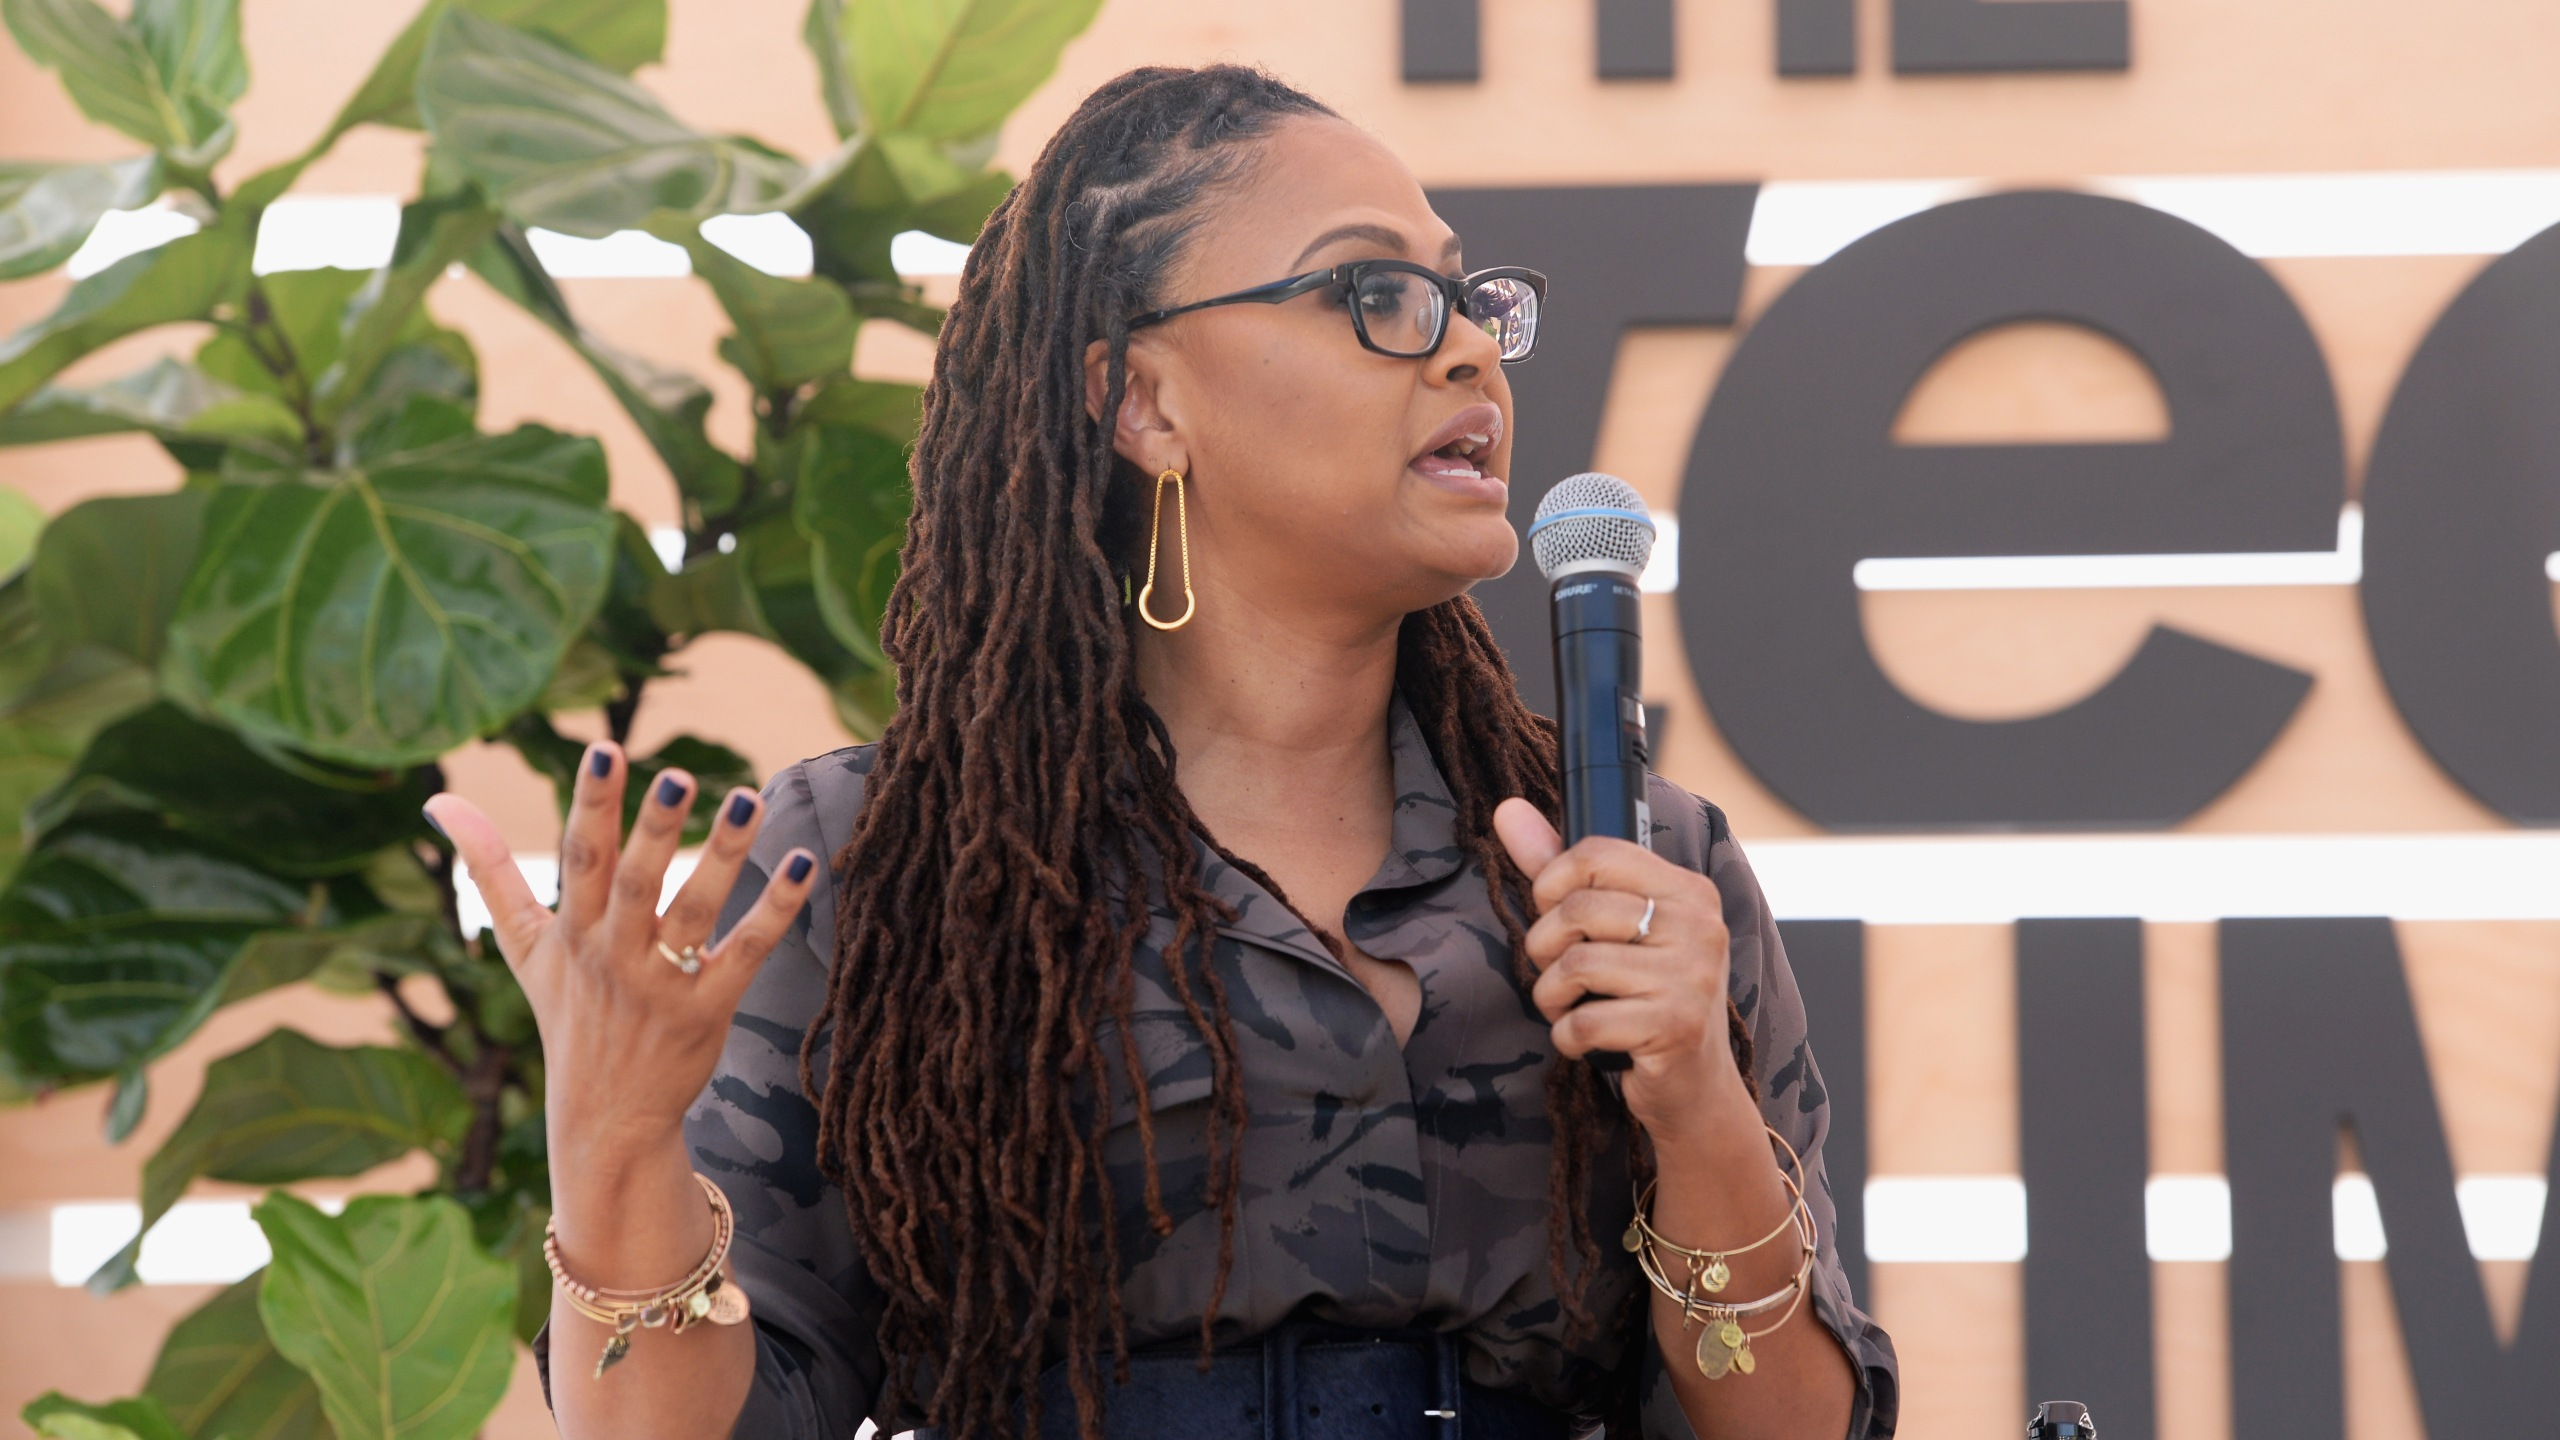 Ava DuVernay speaks onstage during The Teen Vogue Summit LA: Keynote Conversation with A Wrinkle In Time on Dec. 2, 2017, in Playa Vista (Credit: Vivien Killilea/Getty Images for Teen Vogue )